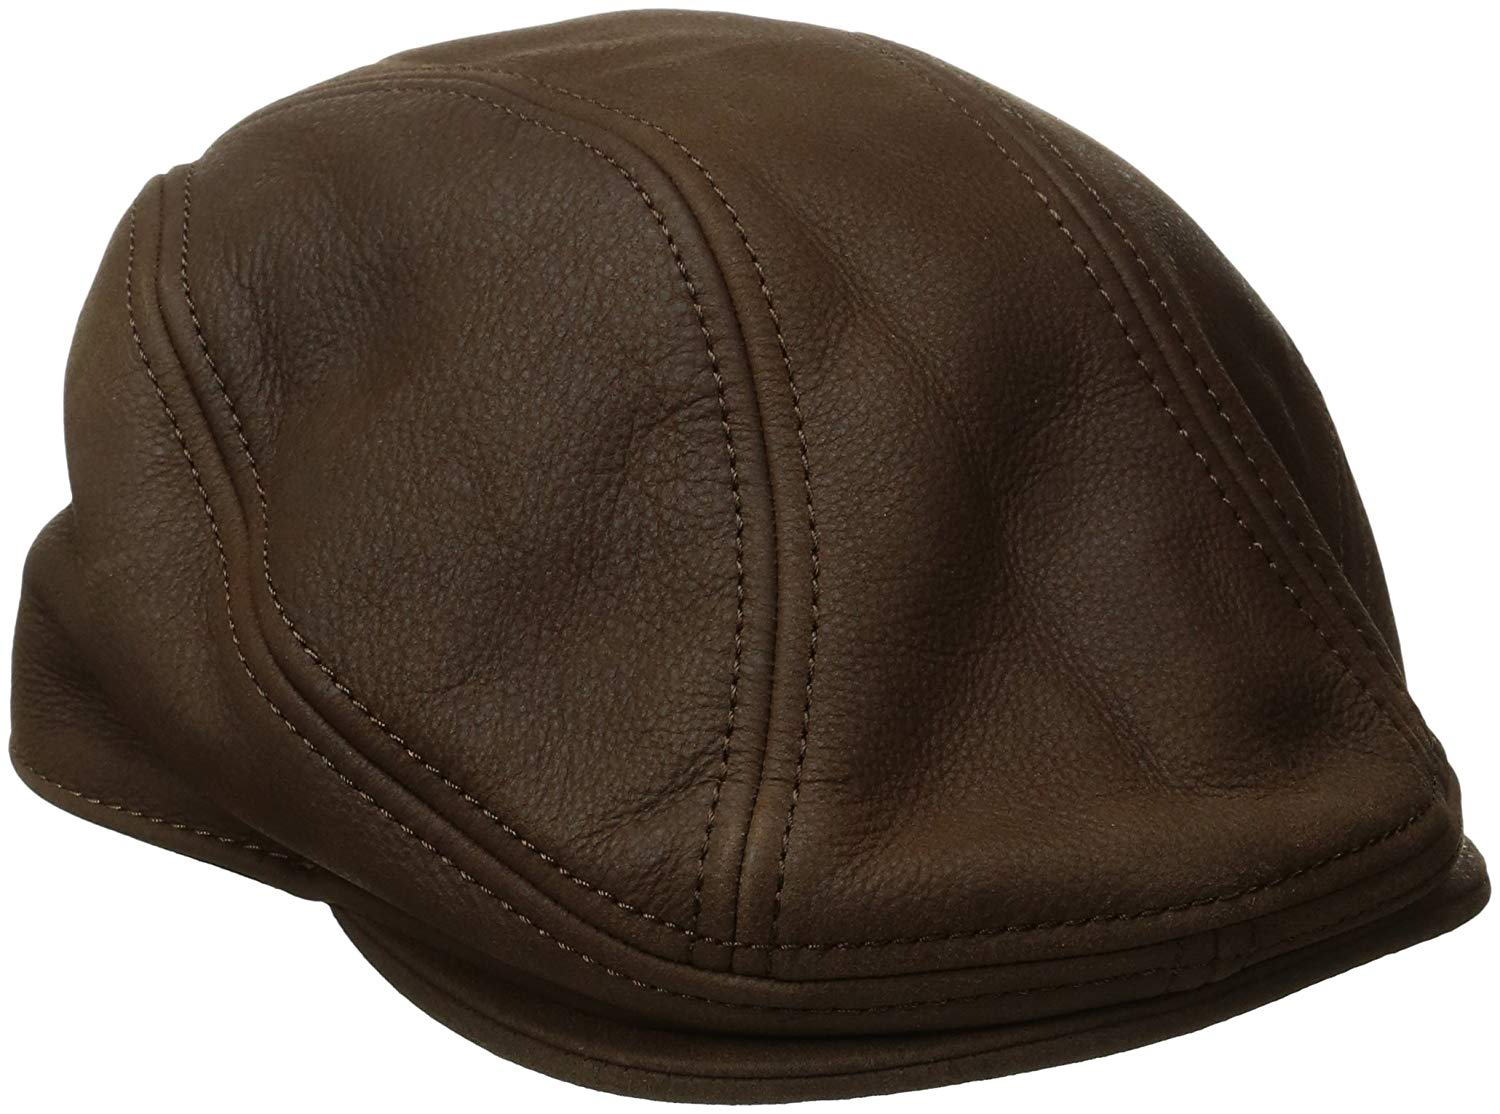 1b5a92b22b0a3 Get Quotations · Stetson Men s Oily Timber Leather Ivy Cap